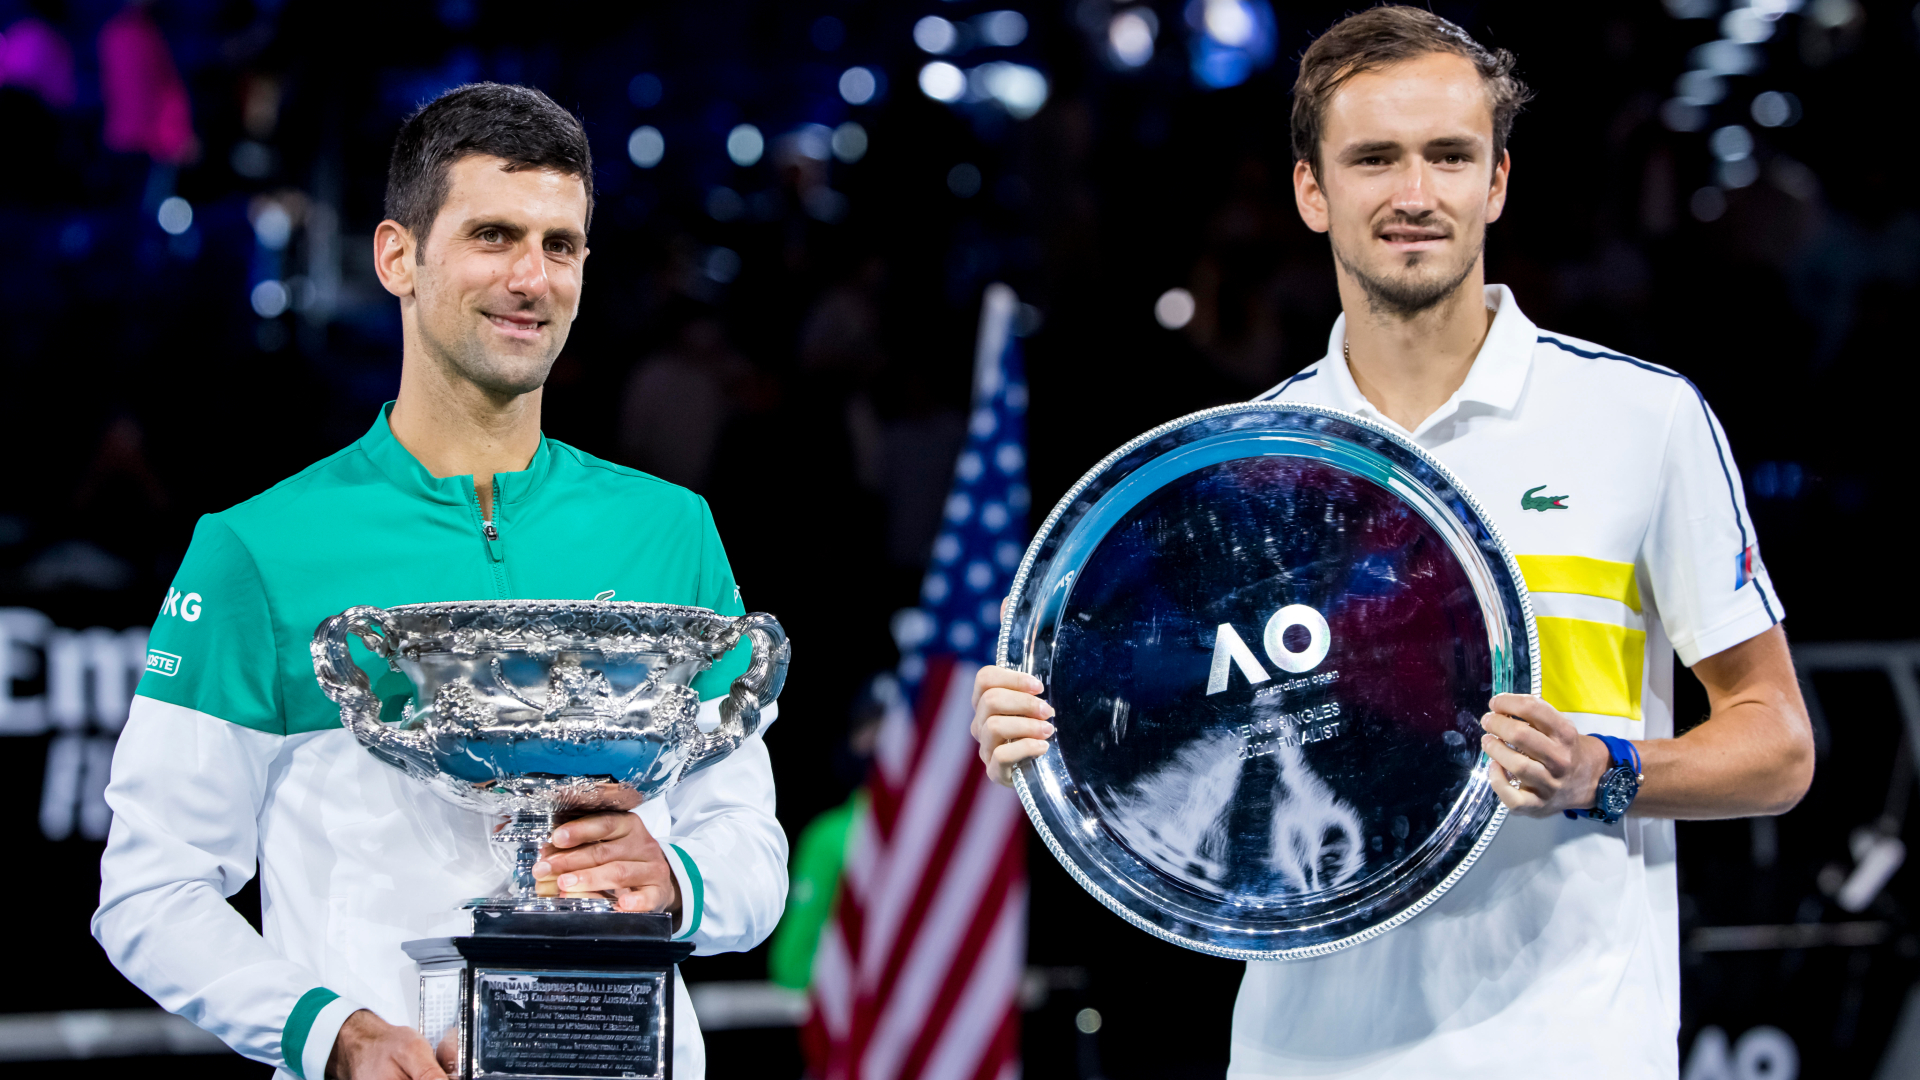 Australian Open: 'Cyborgs of tennis' not done yet as Djokovic continues Melbourne dominance